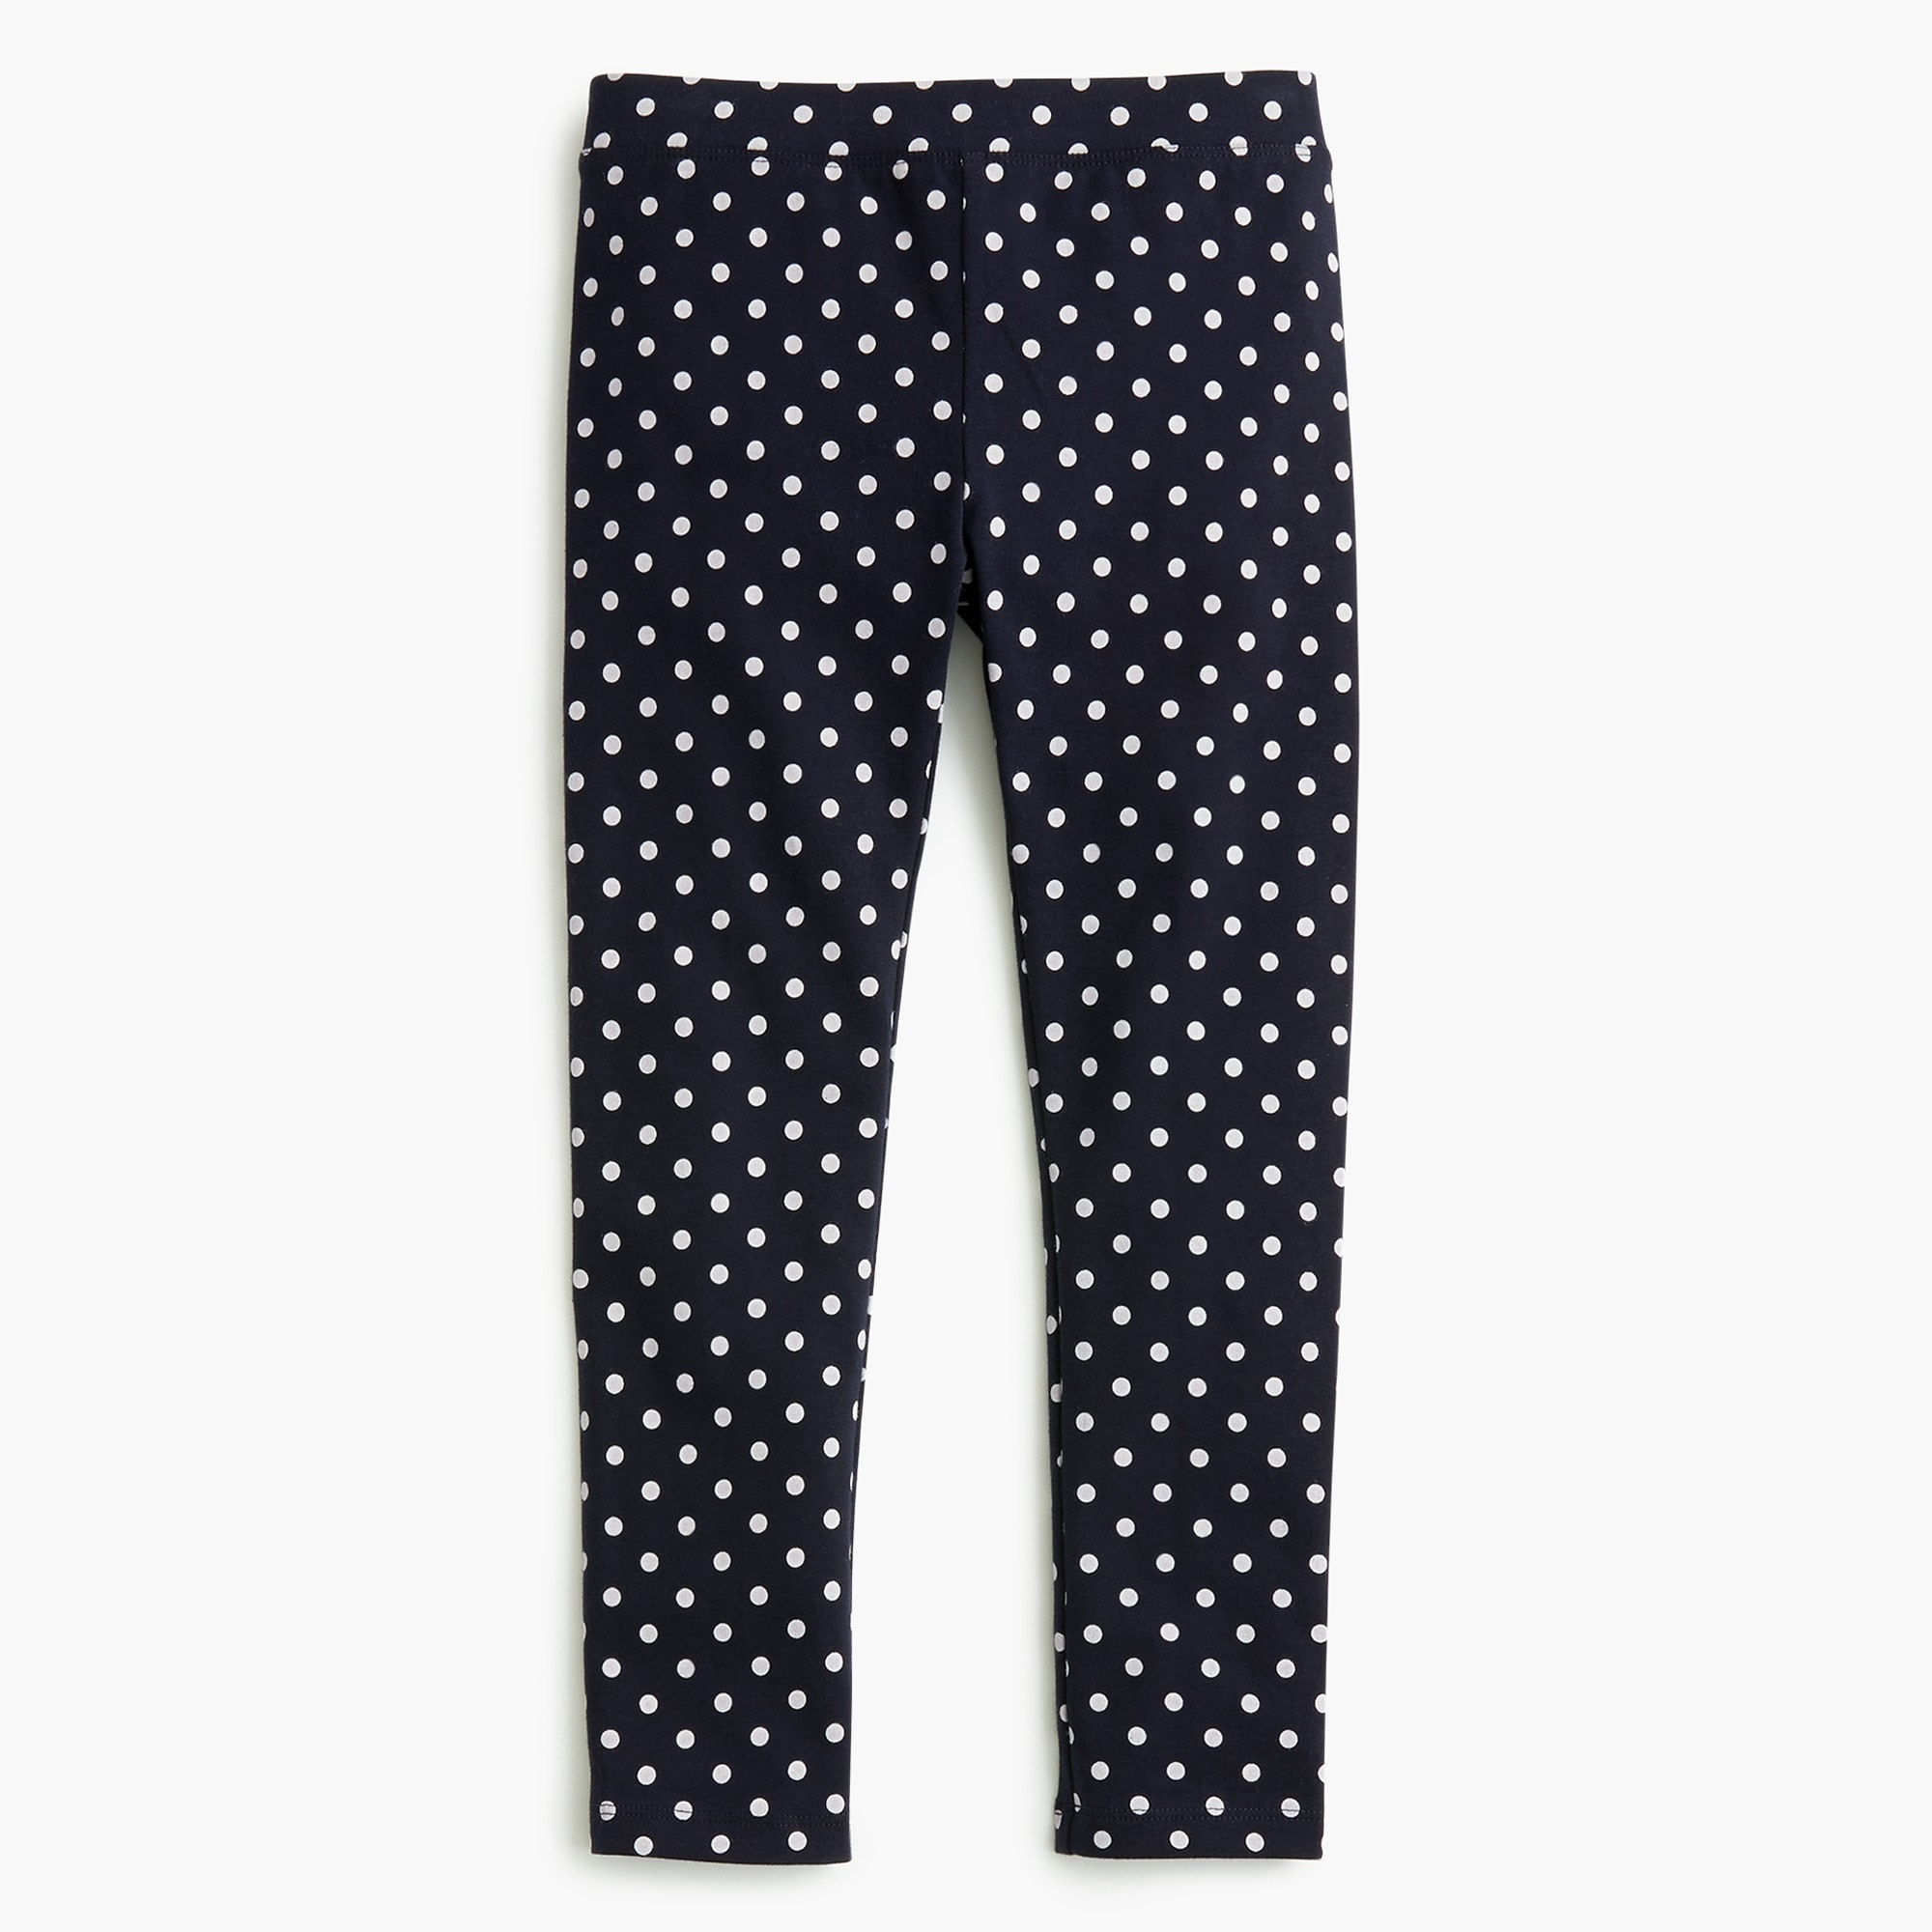 Girls' everyday leggings in dots